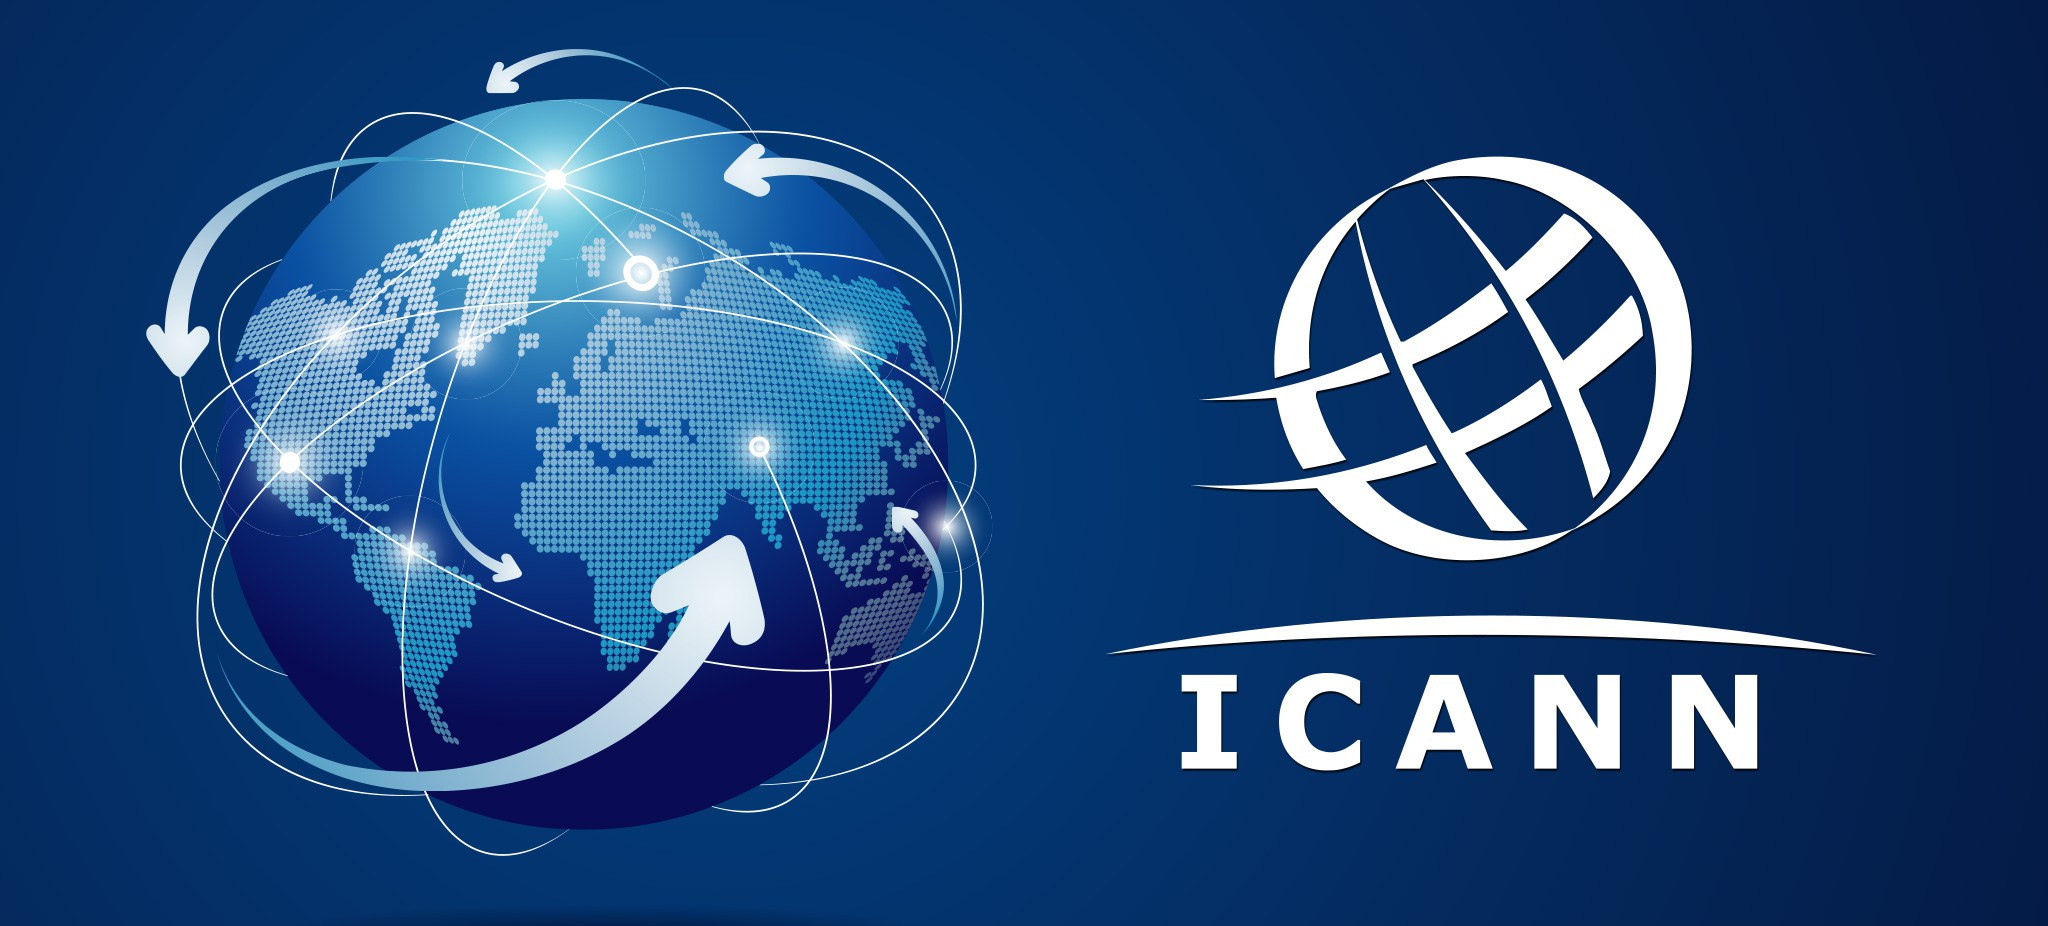 ICANN - the Internet Corporation for Assigned Names and Numbers - has published a report on its website which constitutes formal recognition of acceptance of the